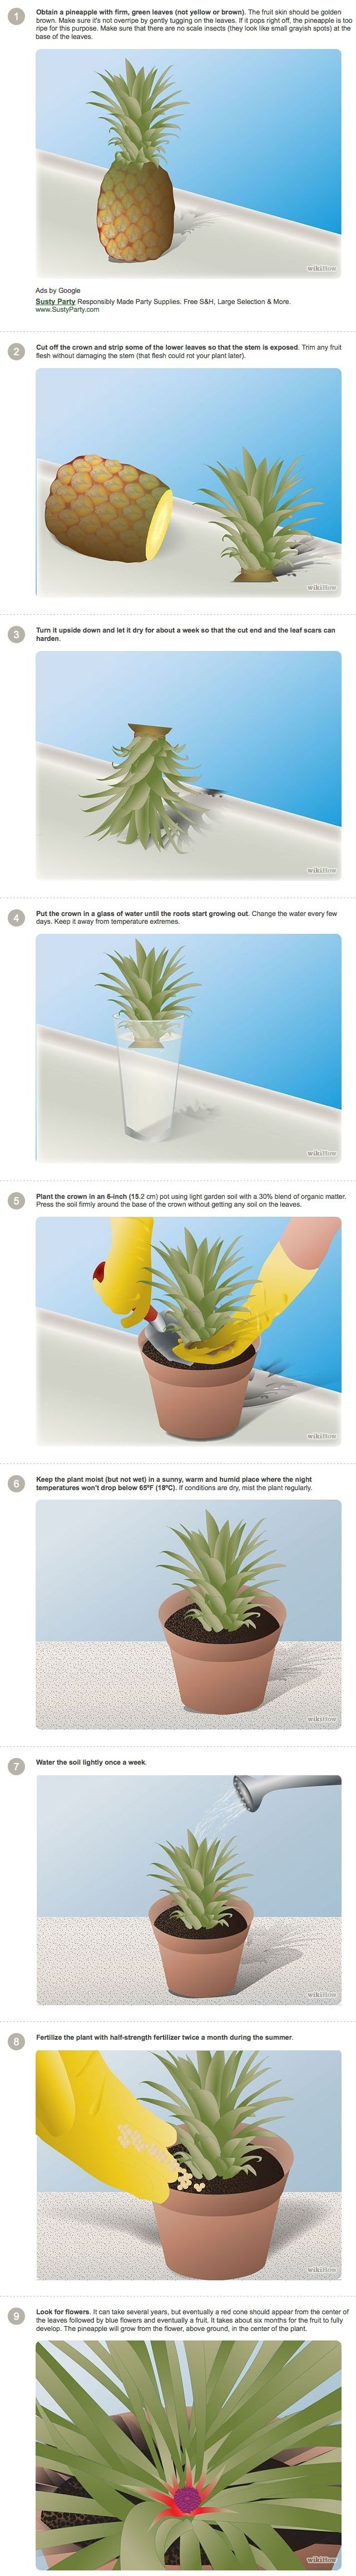 How to grow a pineapple..